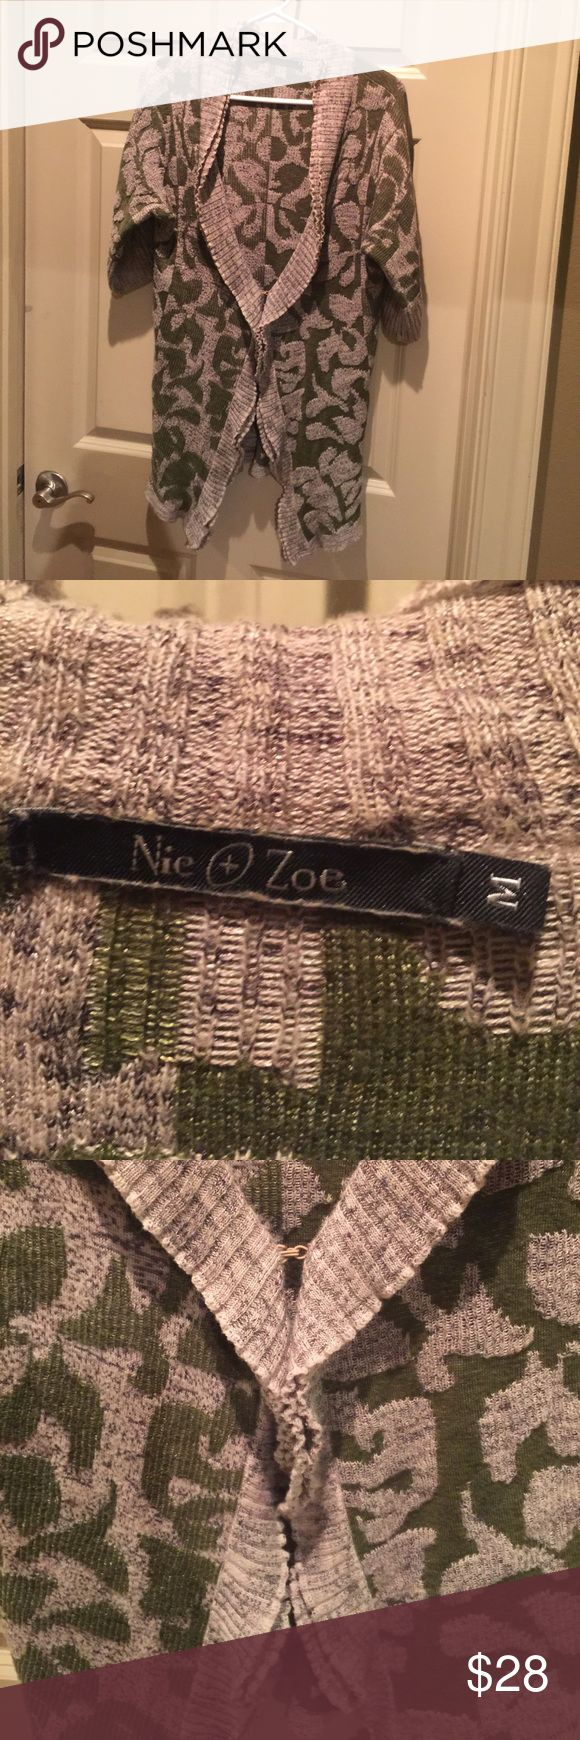 """Nic + Zoe distressed/damask inspired cardigan Nordstrom brand: Nic + Zoe army green and taupe/gray distressed/damask inspired cardigan fastens at waistline size is a true Medium fit.  Hits me mid thigh and I'm 5'6"""".  Has a slight shimmery effect but not a metallic thread. Very cool and transitional for fall/winter/spring. Pair with a gorgeous shift dress/skirt or opt to go casual in jeans and a white Tee. I am uncertain about the exact blend, my guess is a poly cotton with a TAD bit of…"""